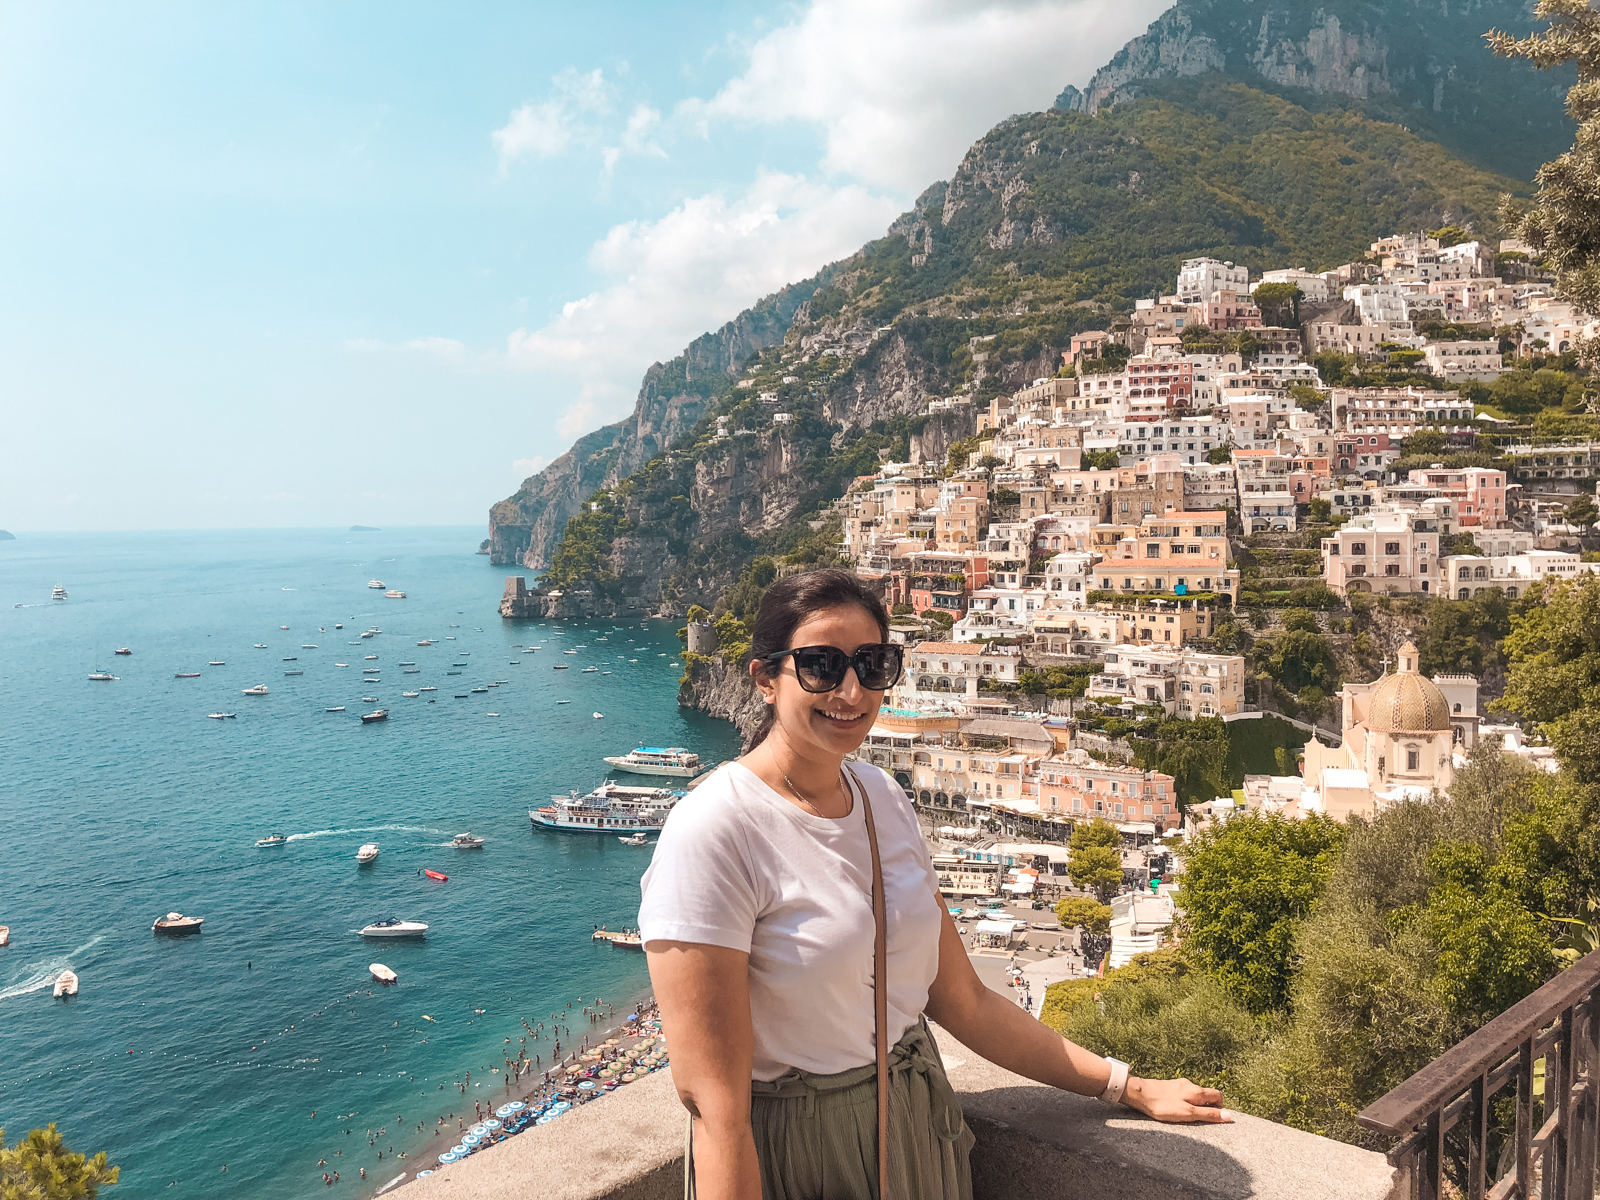 picture of me with iconic Positano houses and water in the background